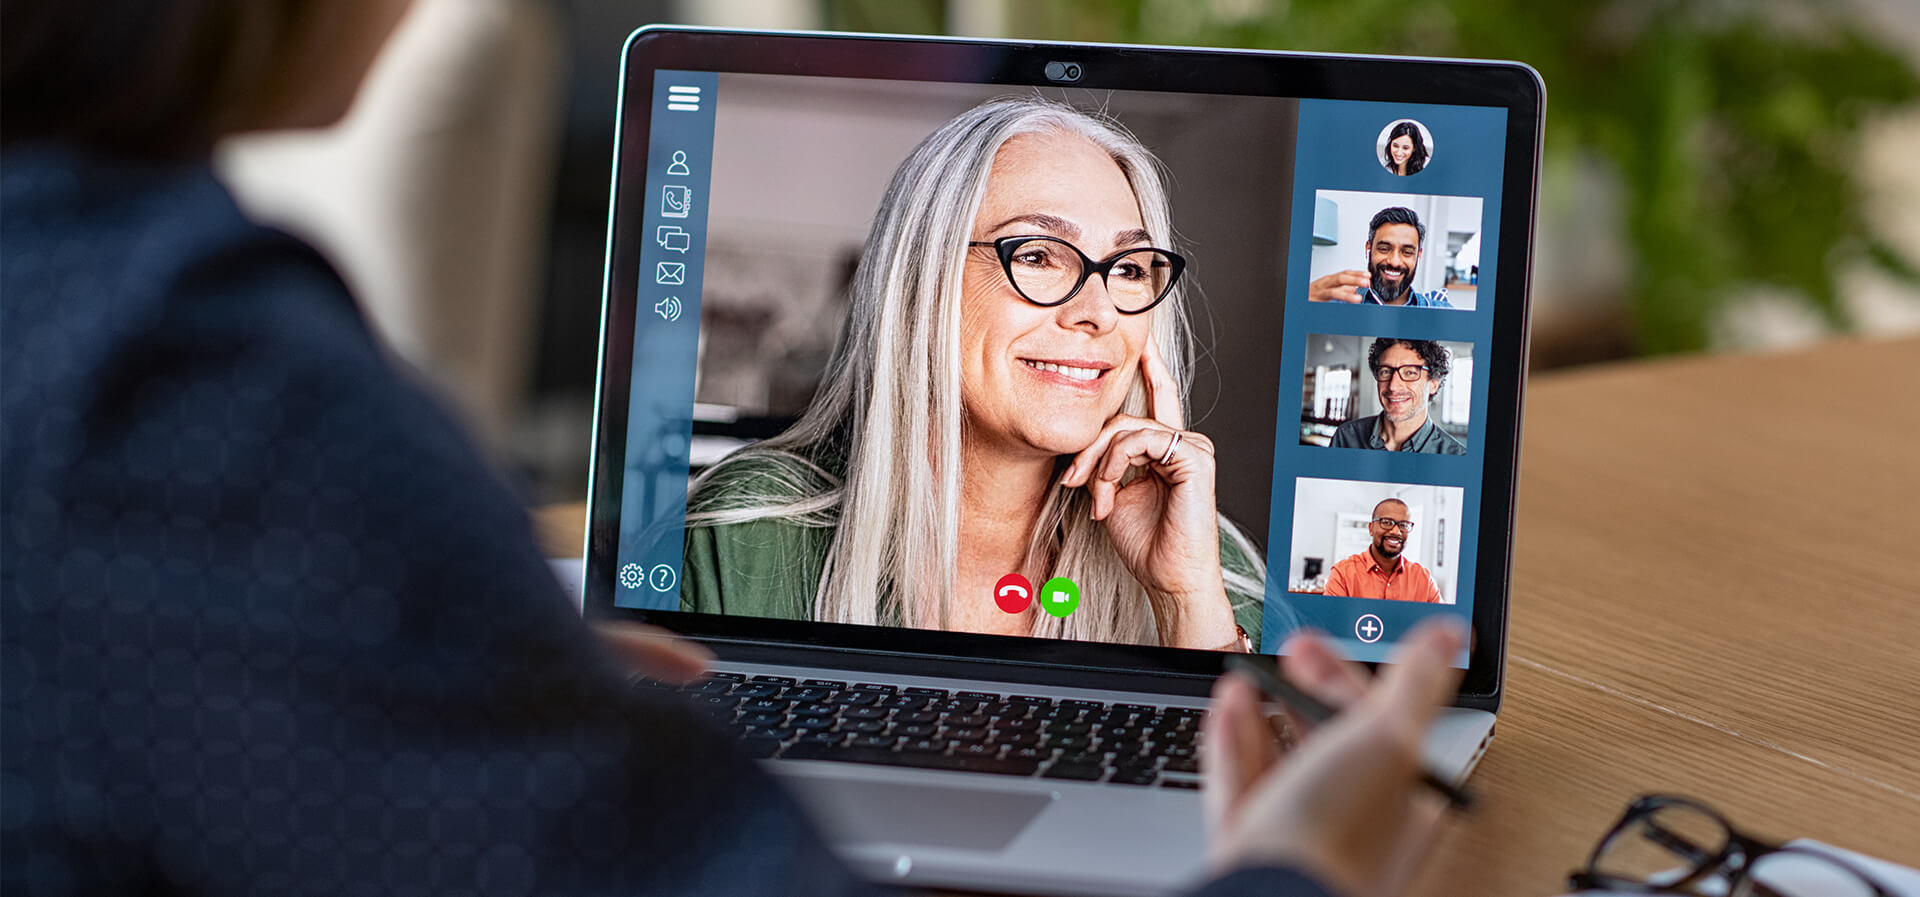 person interacting with a video conference call